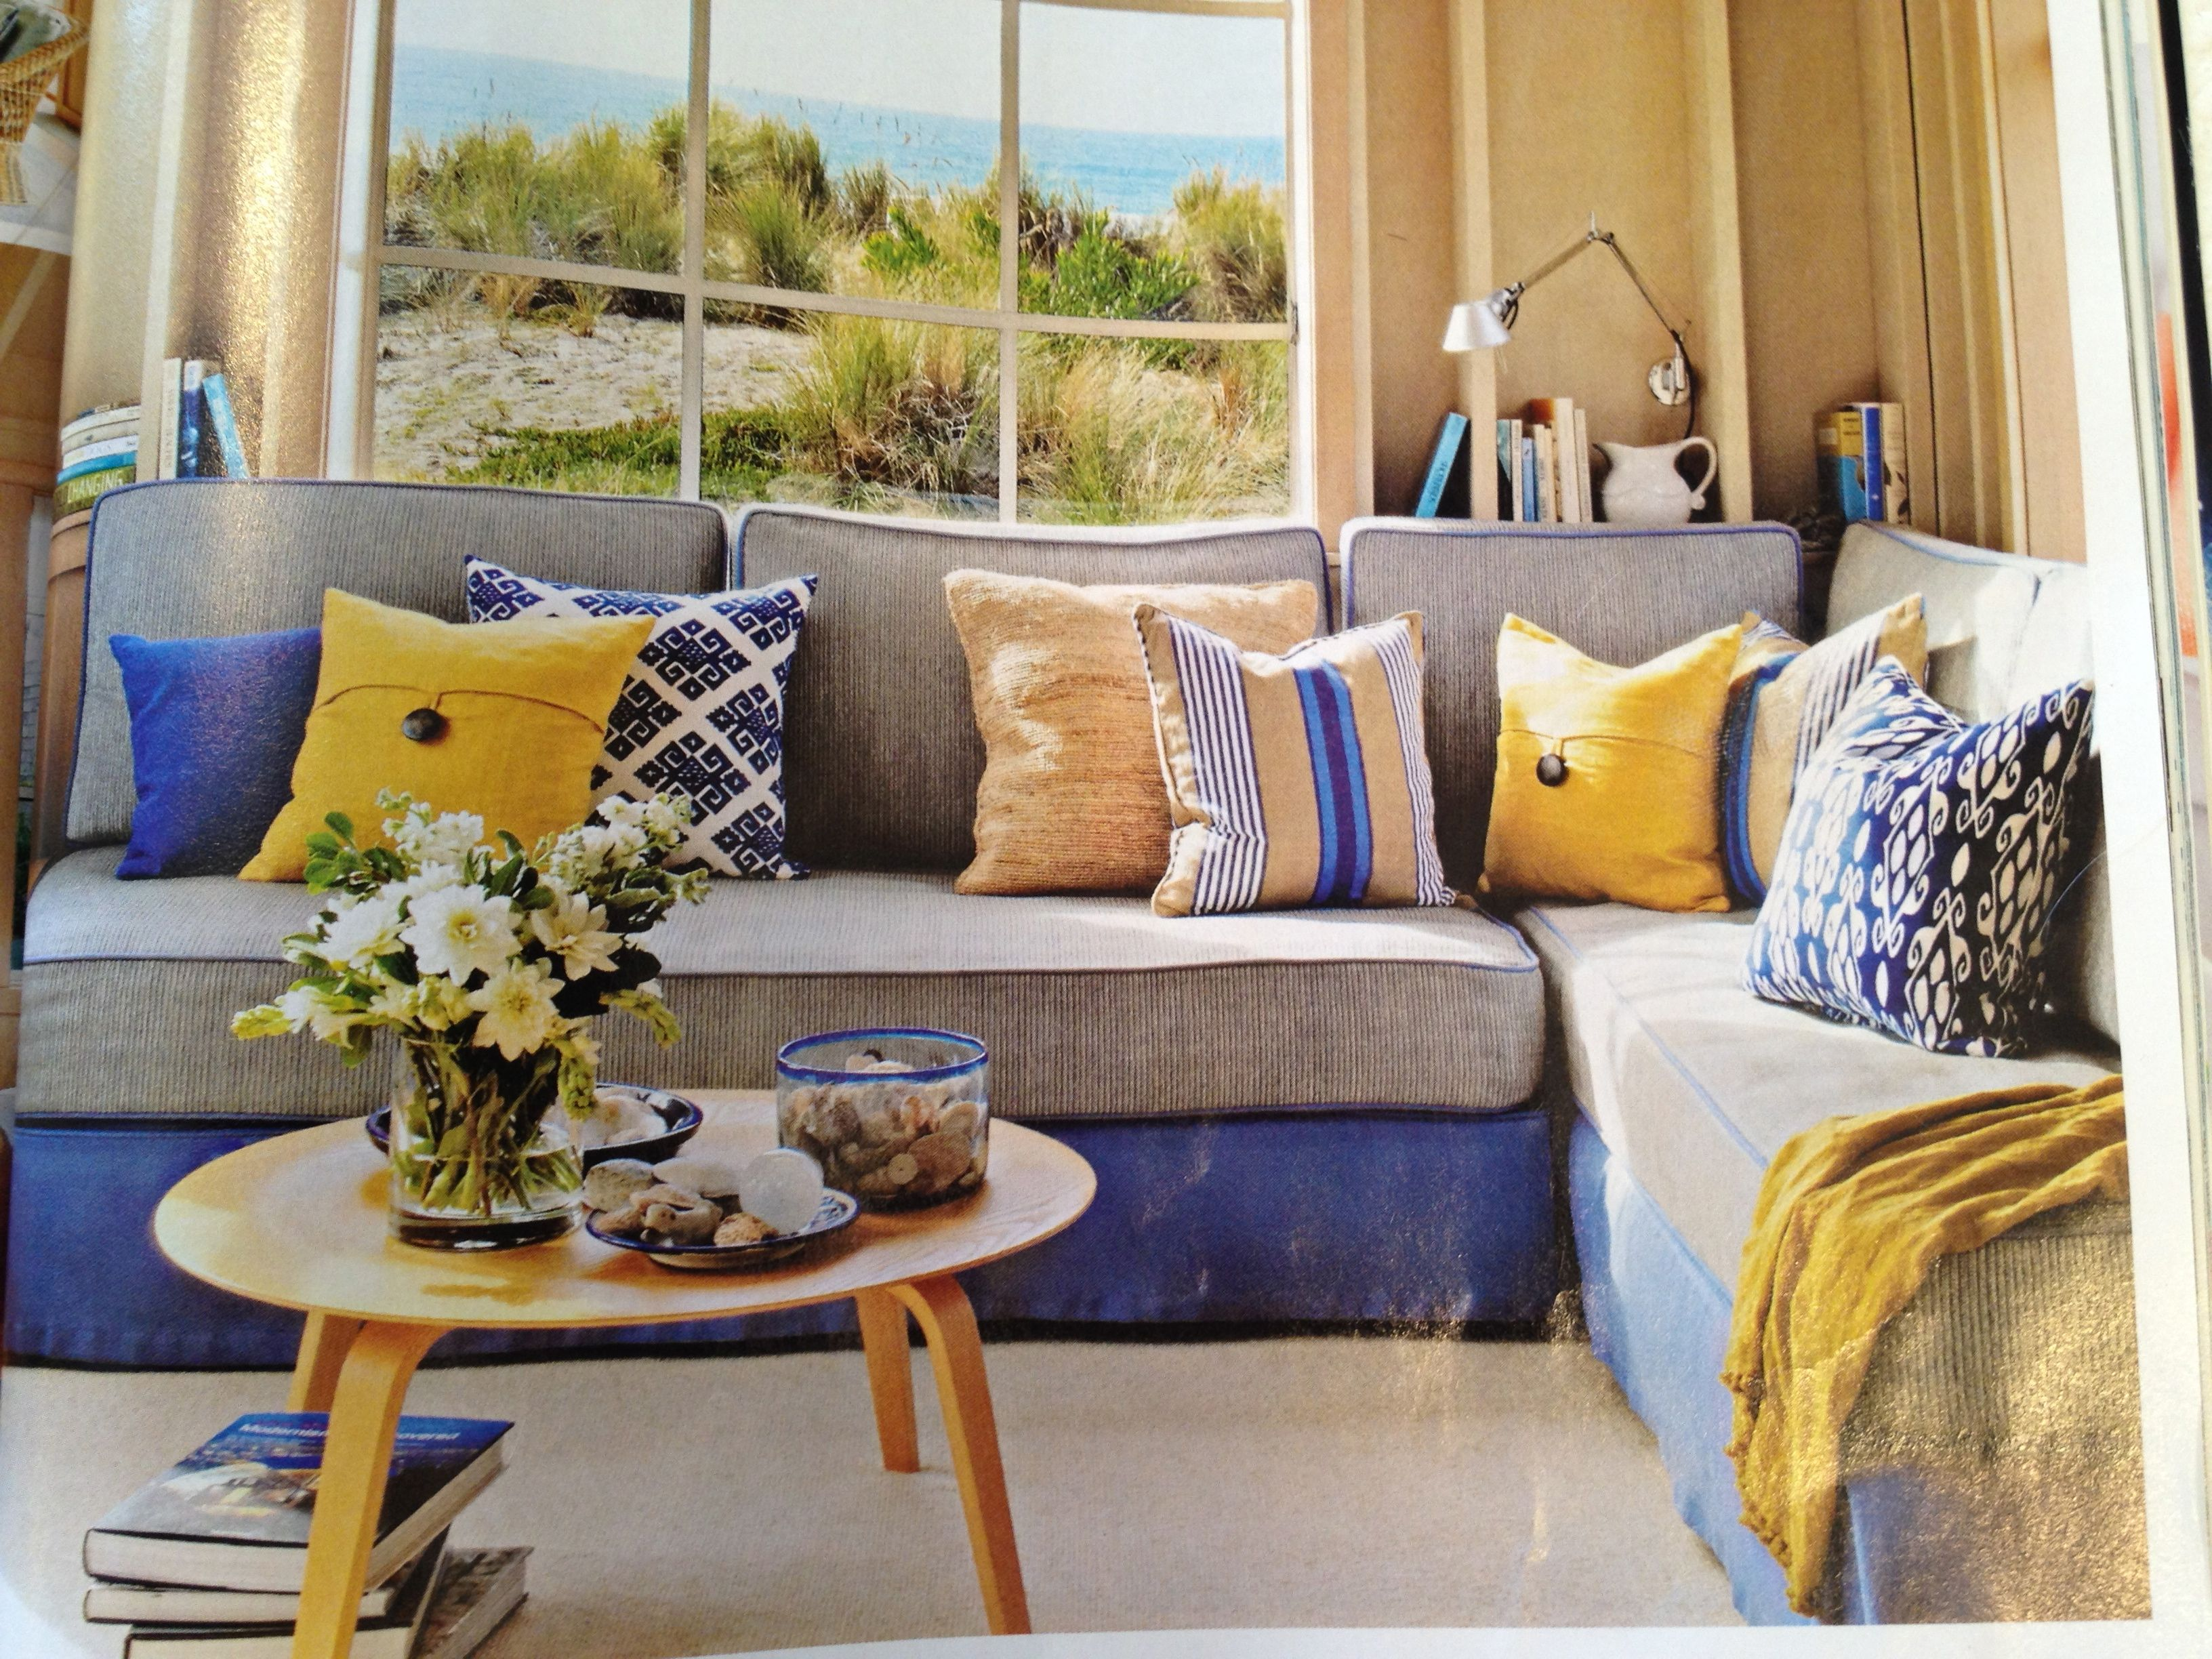 Twin Bed As Sofa Turn Twin Bed Into Sofa Revistapacheco